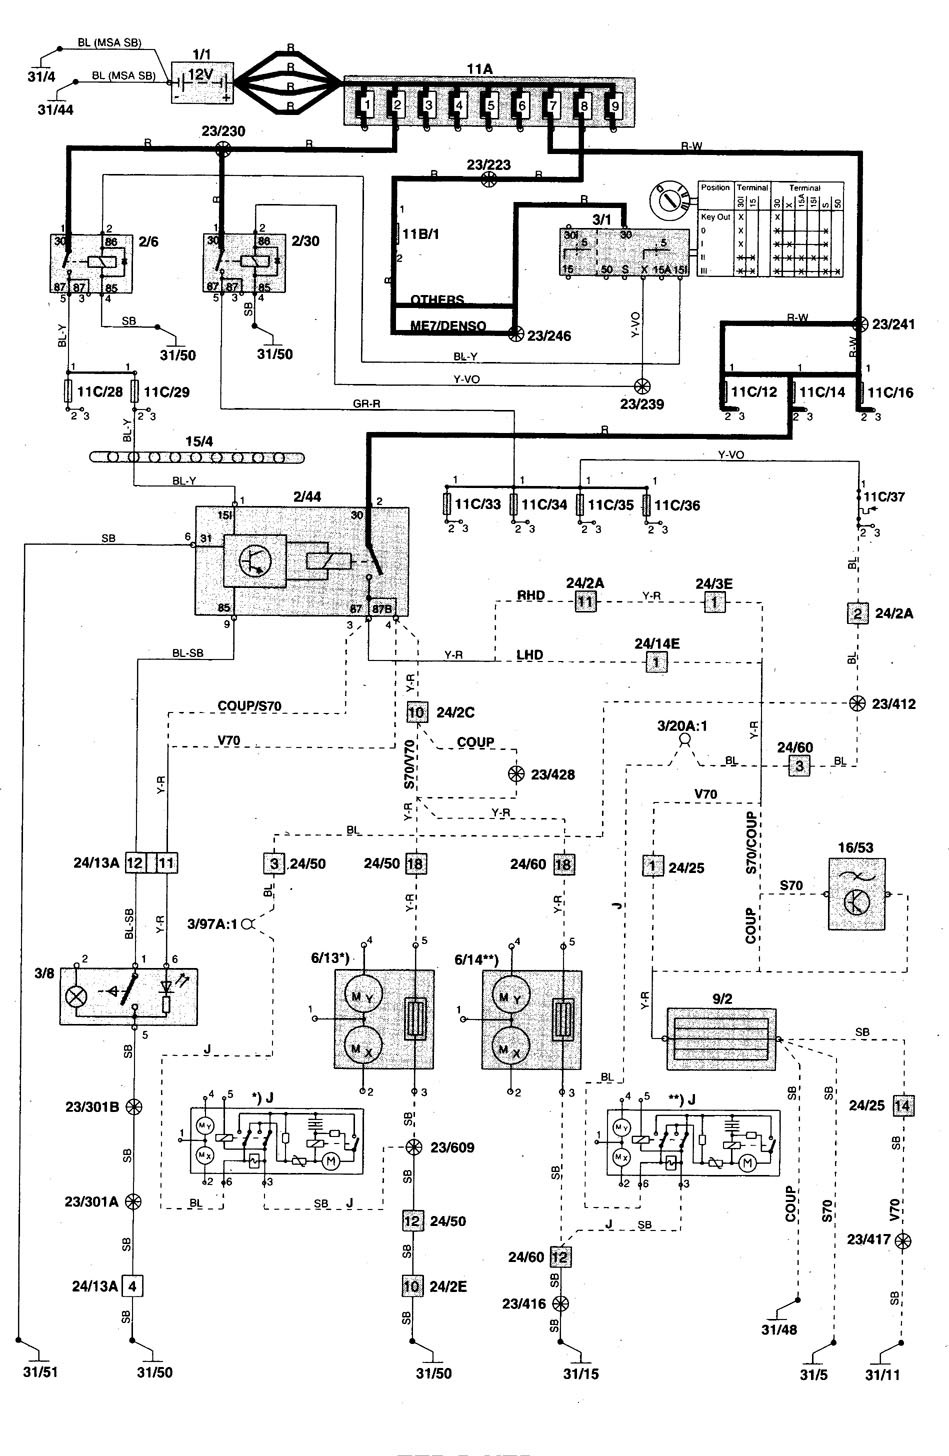 wiring diagram volvo v70 2006 wiring info u2022 rh cardsbox co electrical diagram volvo v70 wiring diagram volvo v70 2008